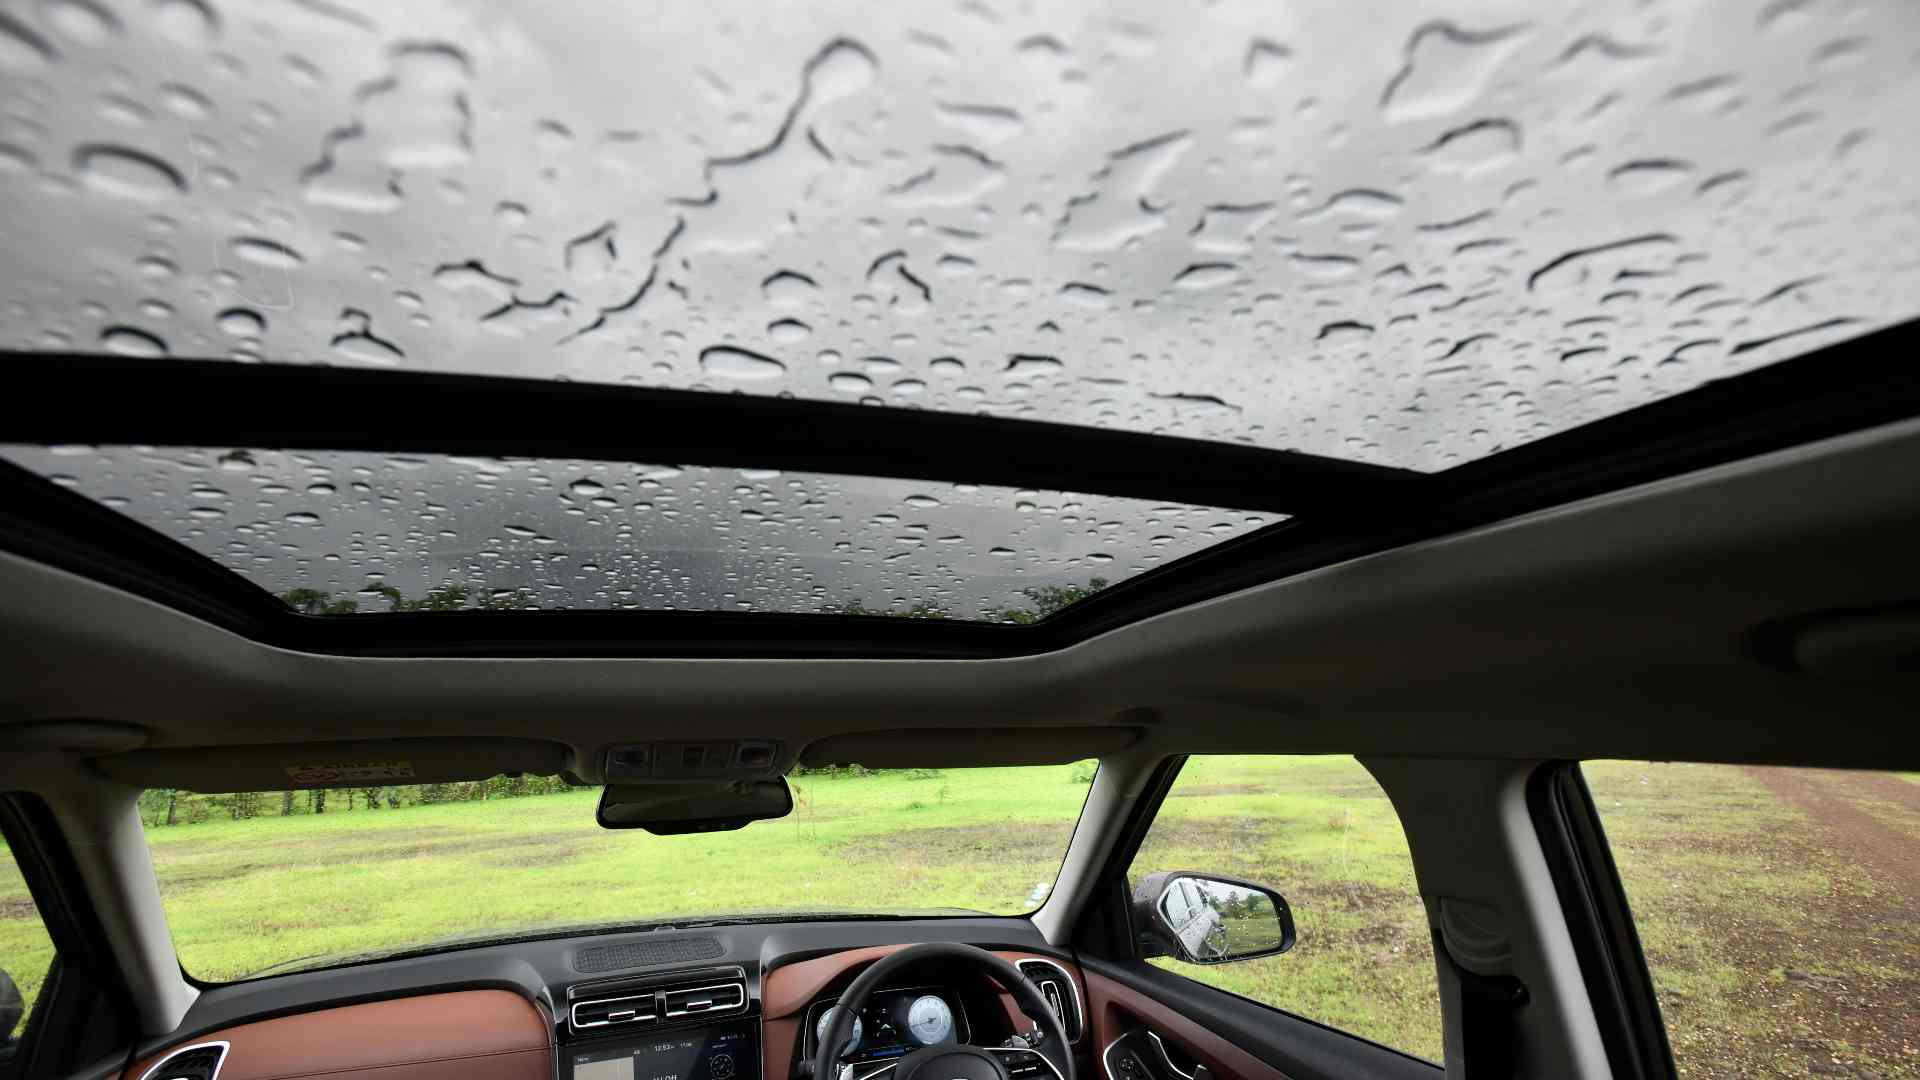 Full-size panoramic sunroof adds to the feeling of airiness inside the Alcazar. Image: Hyundai